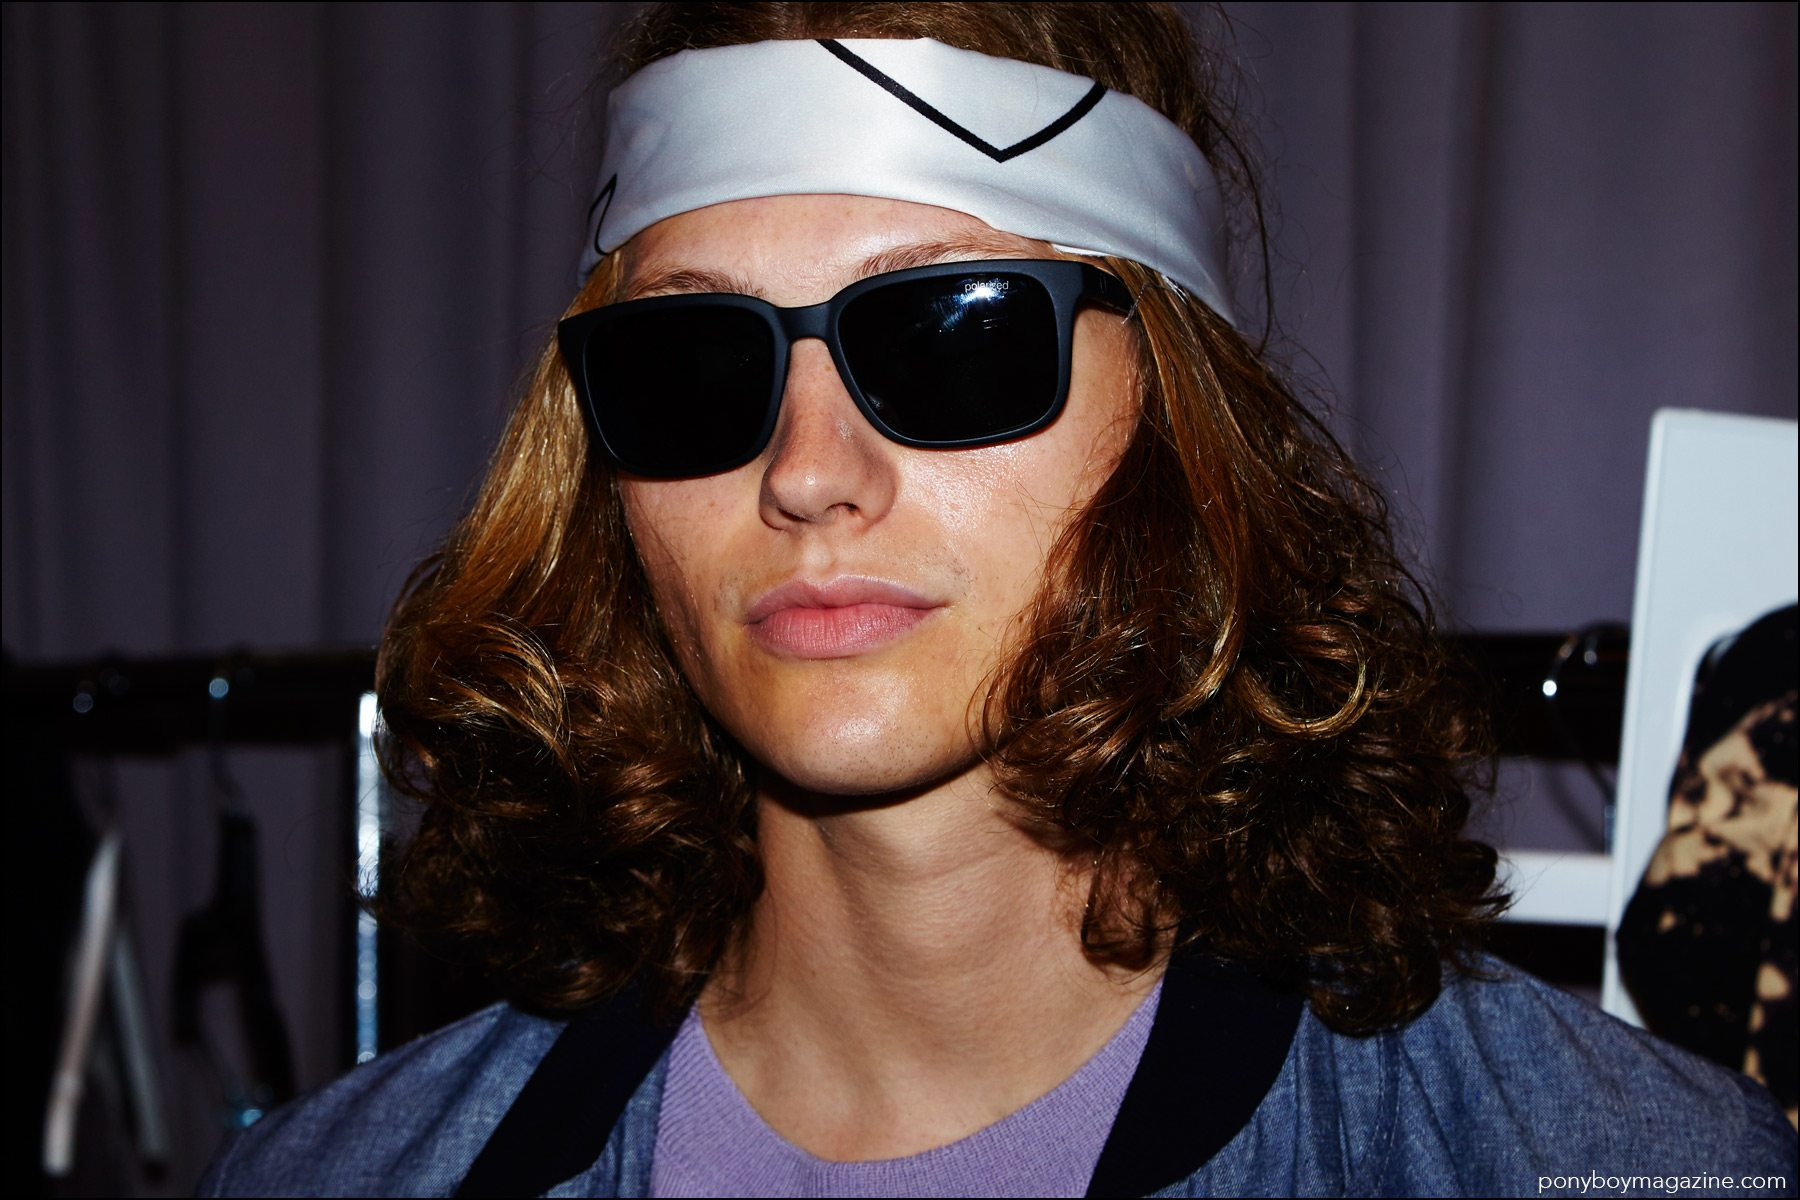 A long-haired male model snapped backstage at the Rochambeau Spring/Summer 2017 menswear show. Photography by Alexander Thompson for Ponyboy magazine NY.